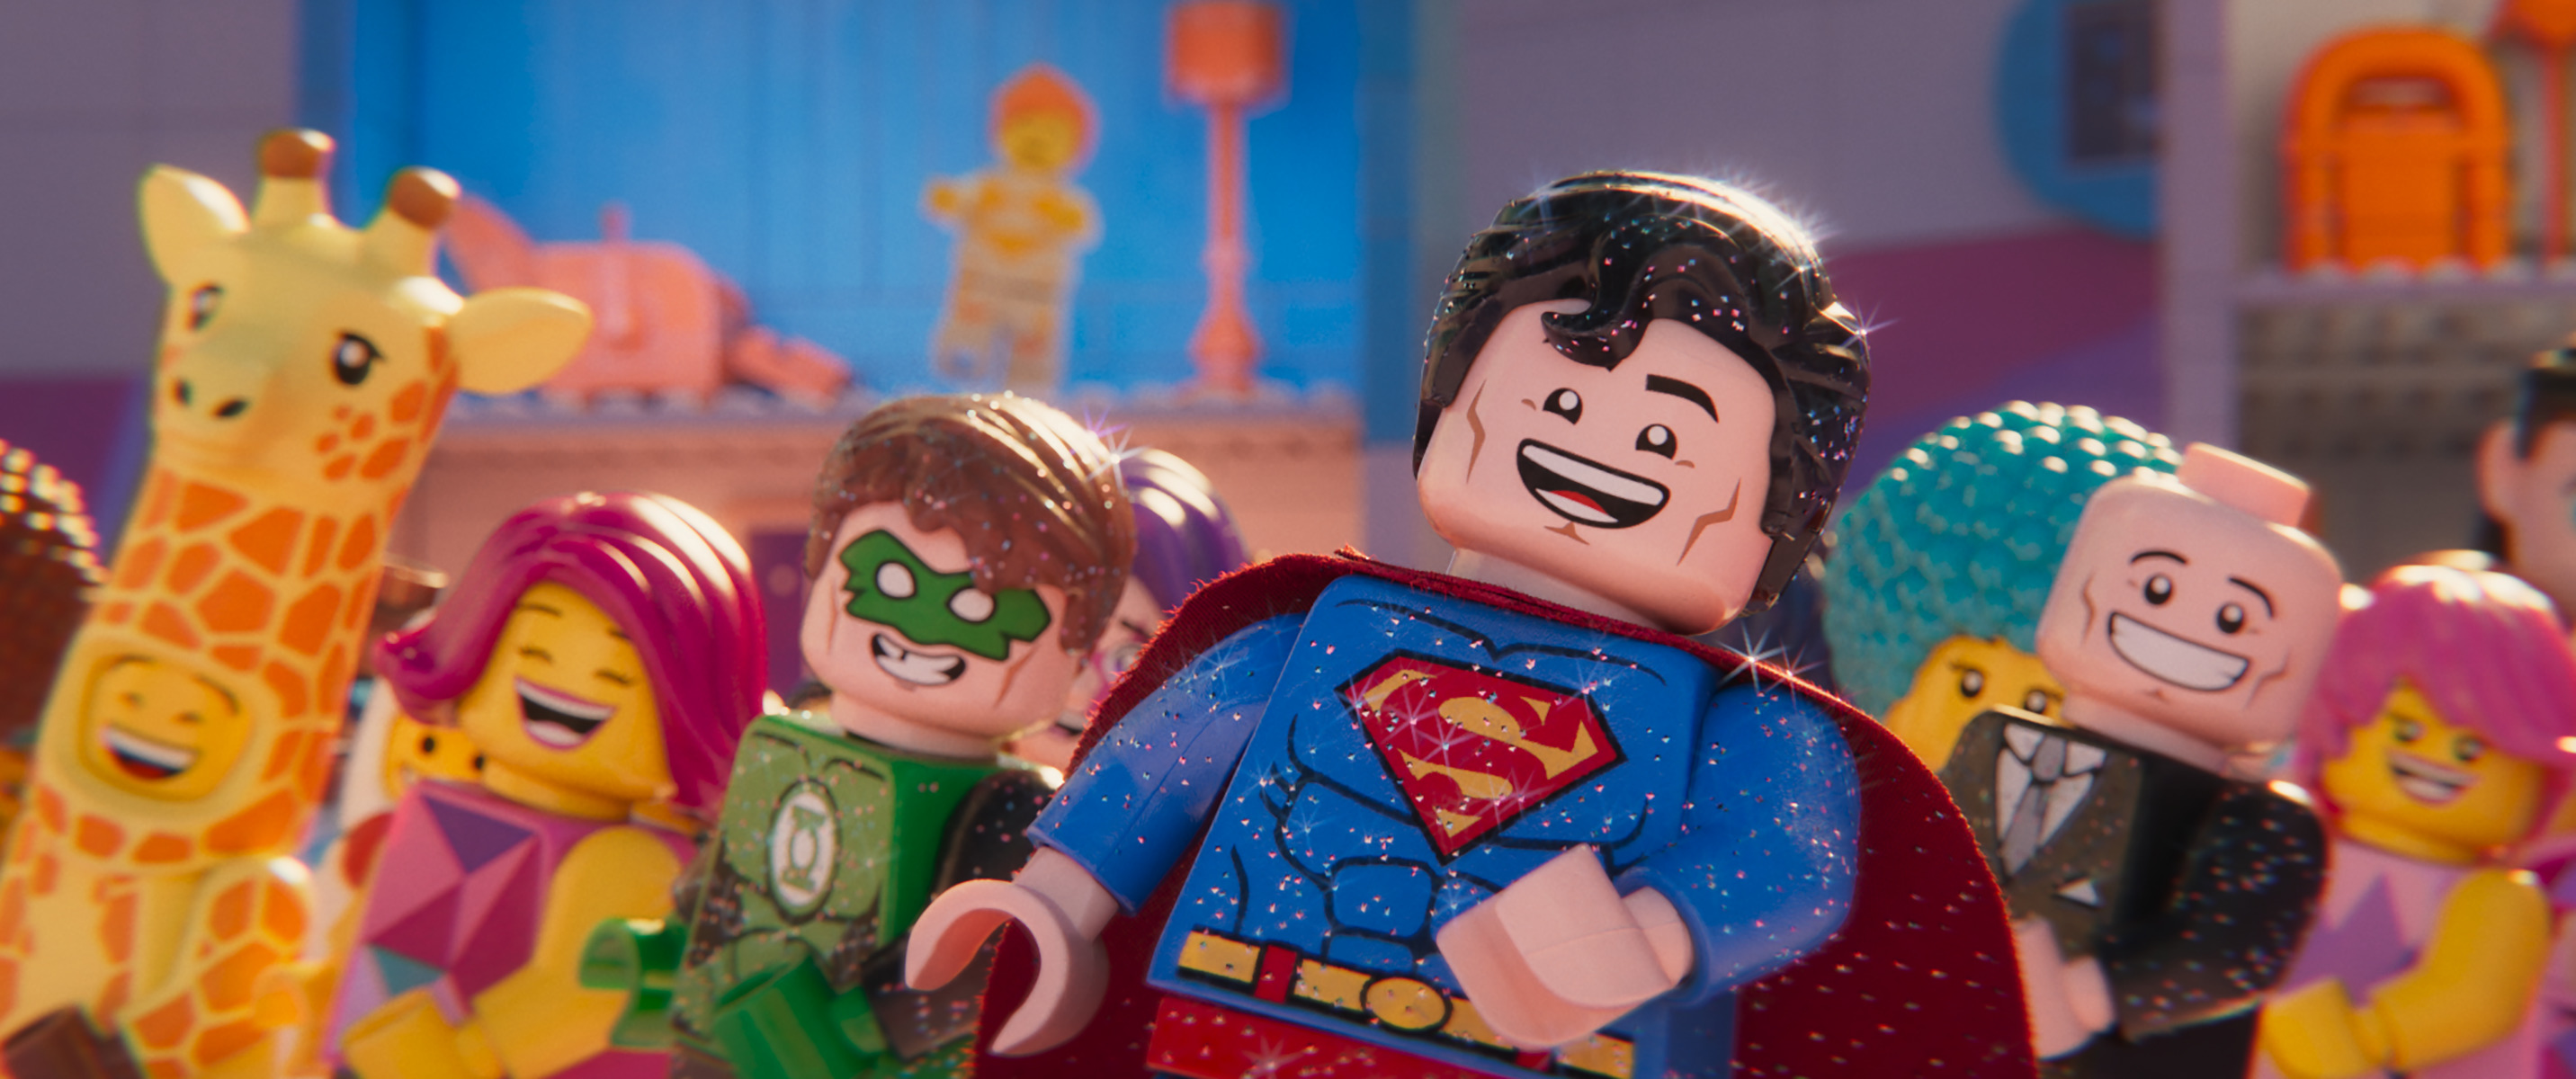 "As Ars' chief ""ugh DC Studios films"" naysayer, I gotta hand it to <em>Lego Movie 2</em>: its judicious application of pop-culture references, including some great Justice League moments, is top-notch."